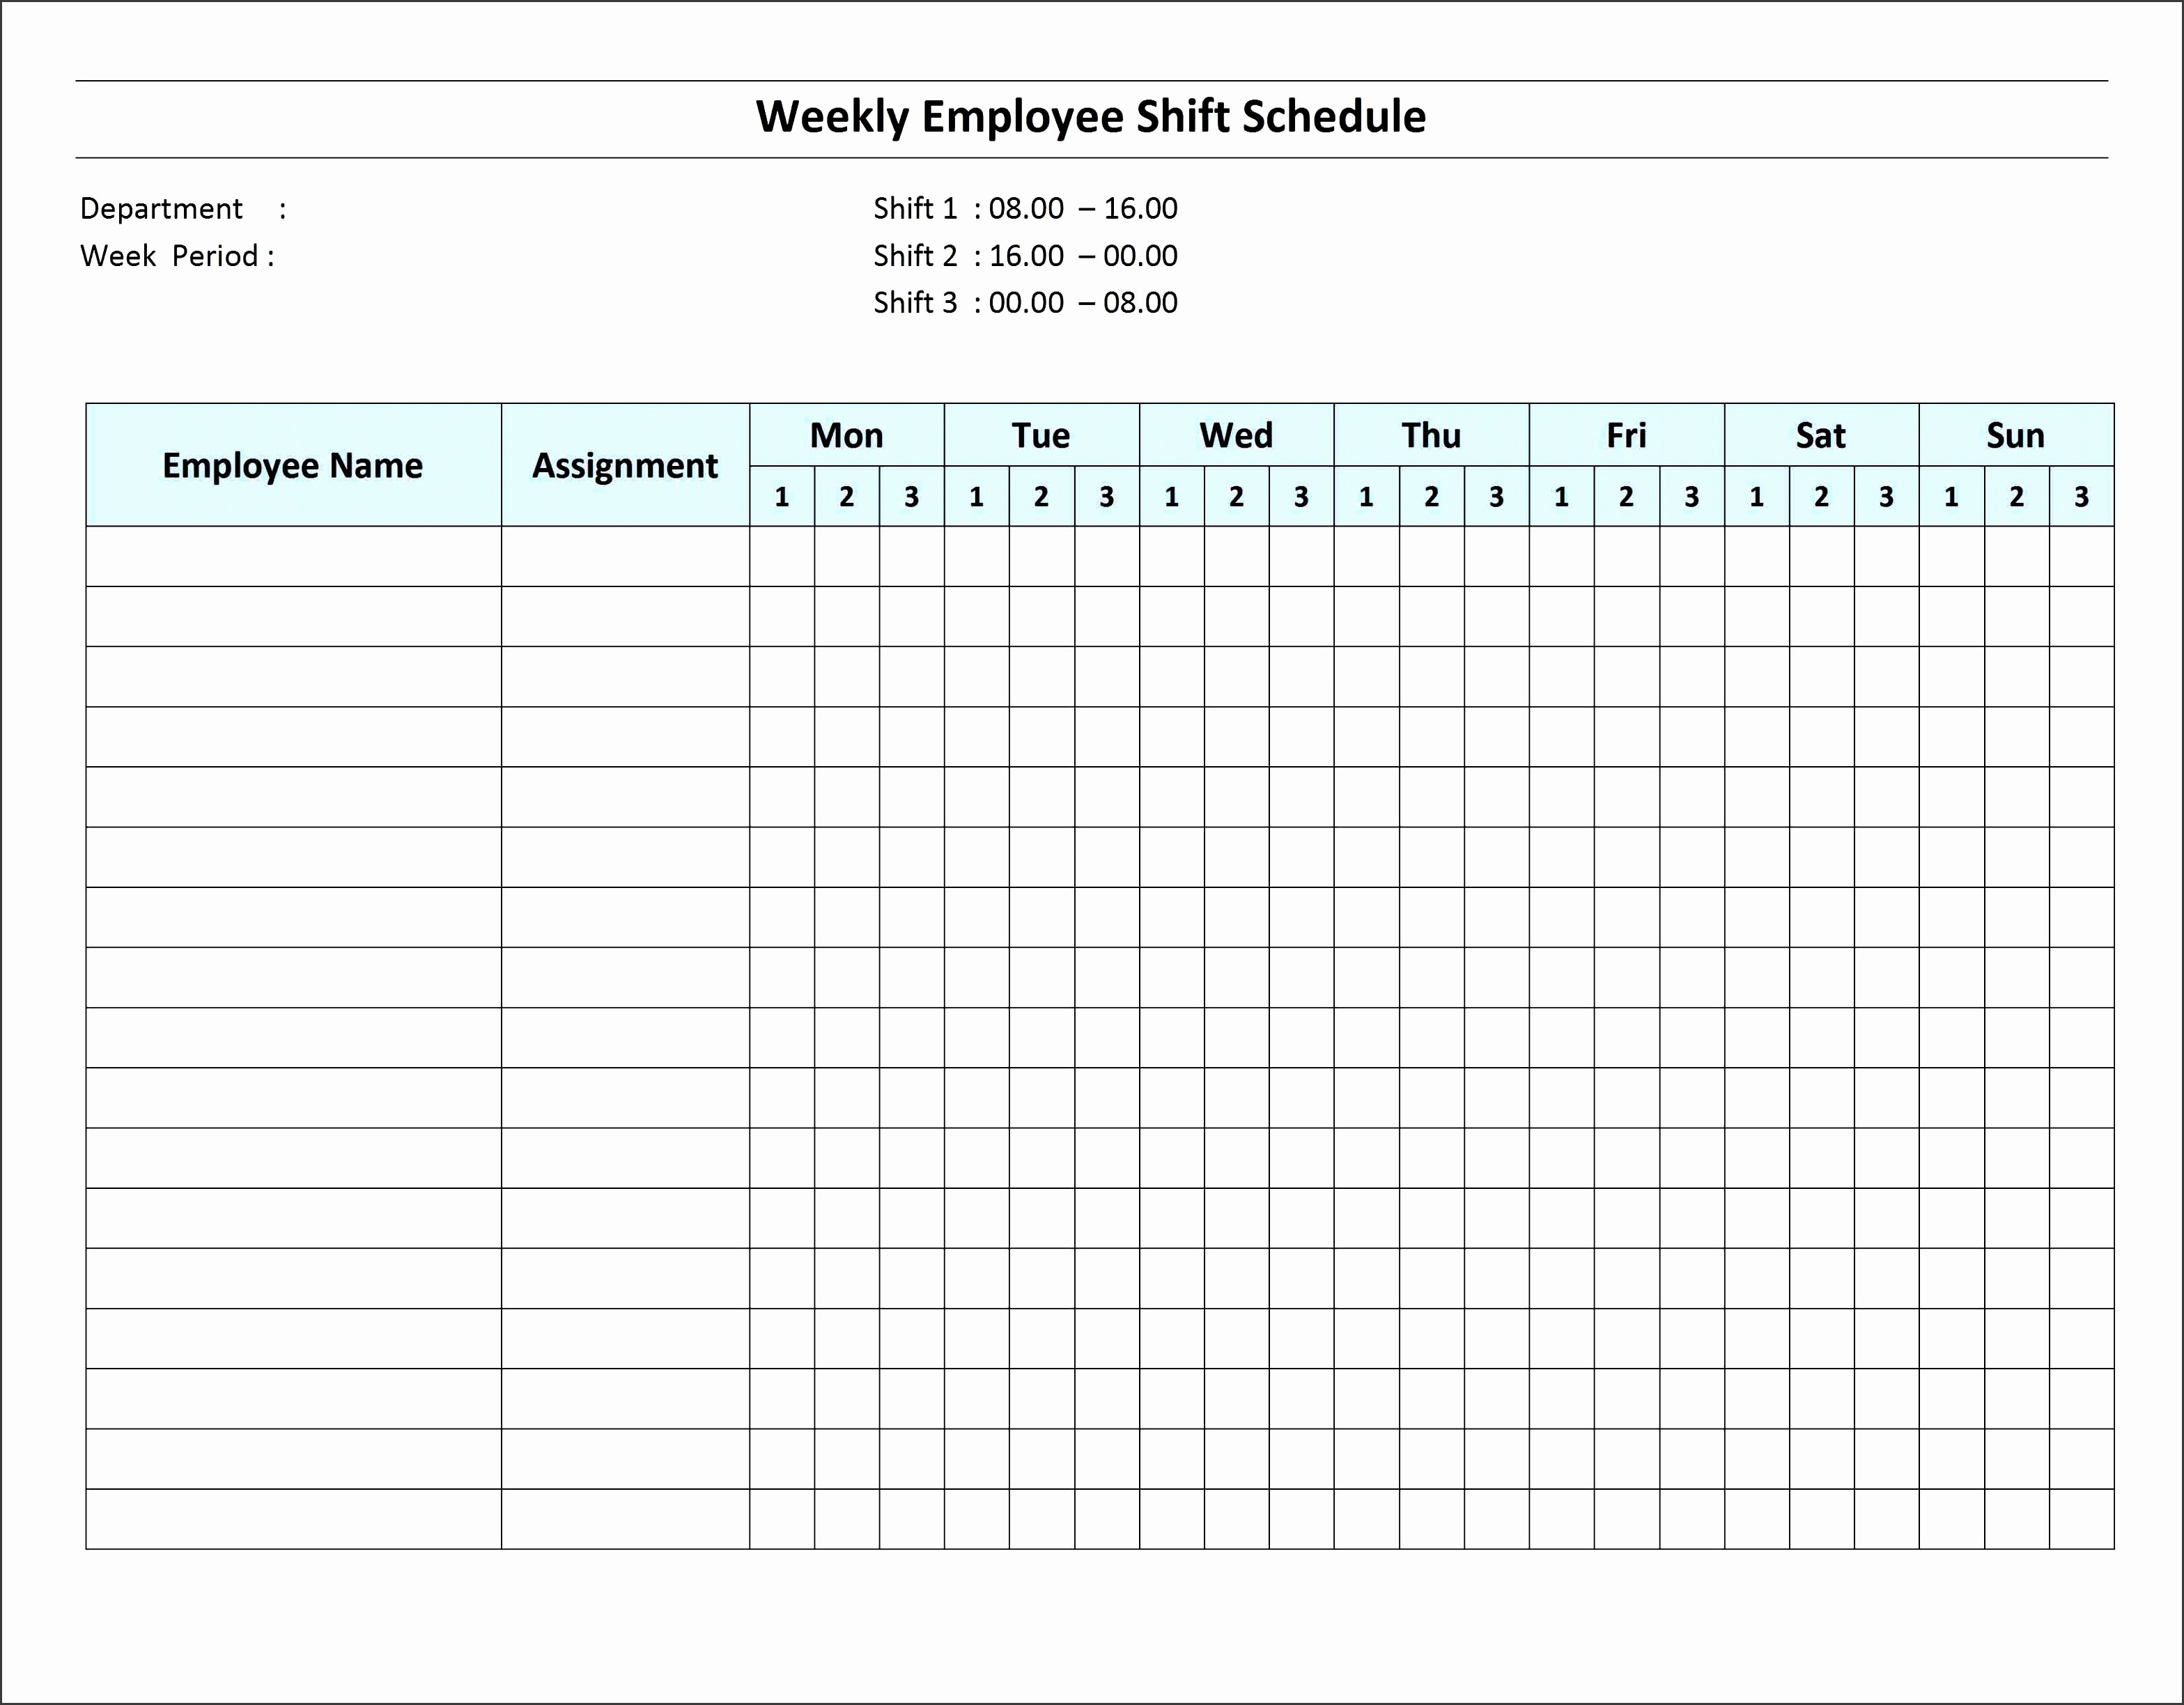 Monthly Employee Shift Schedule Template Awesome 6 Excel Daily Work Schedule Sampletemplatess